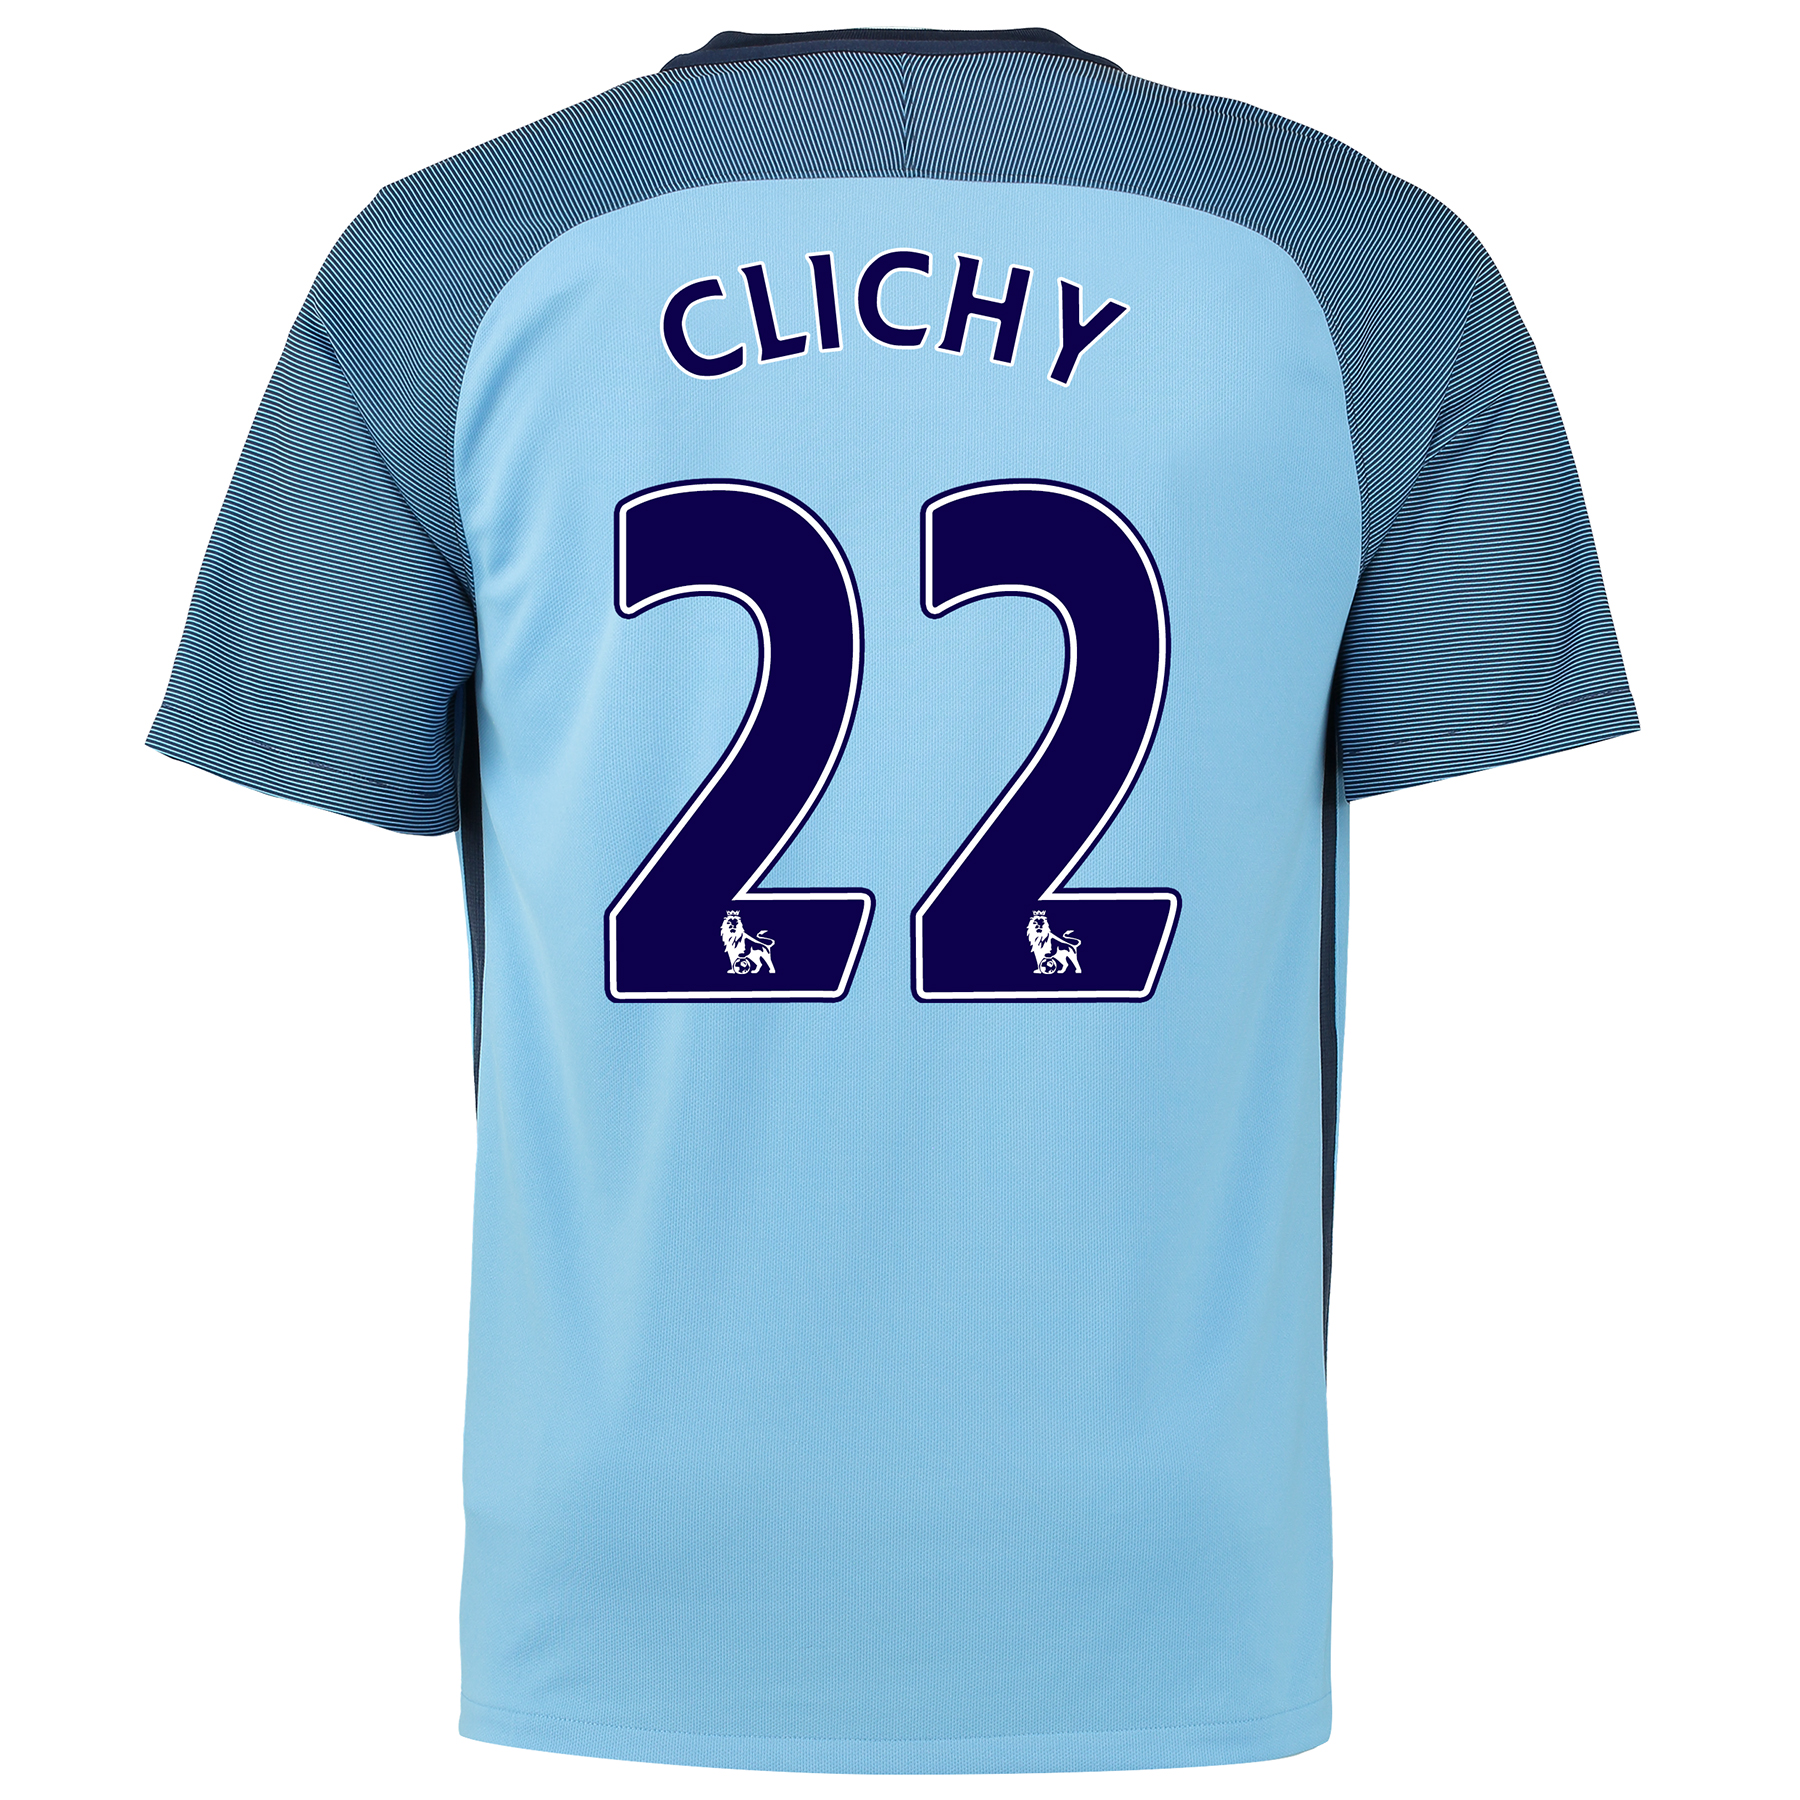 Manchester City Home Shirt 2016-17 with Clichy 22 printing